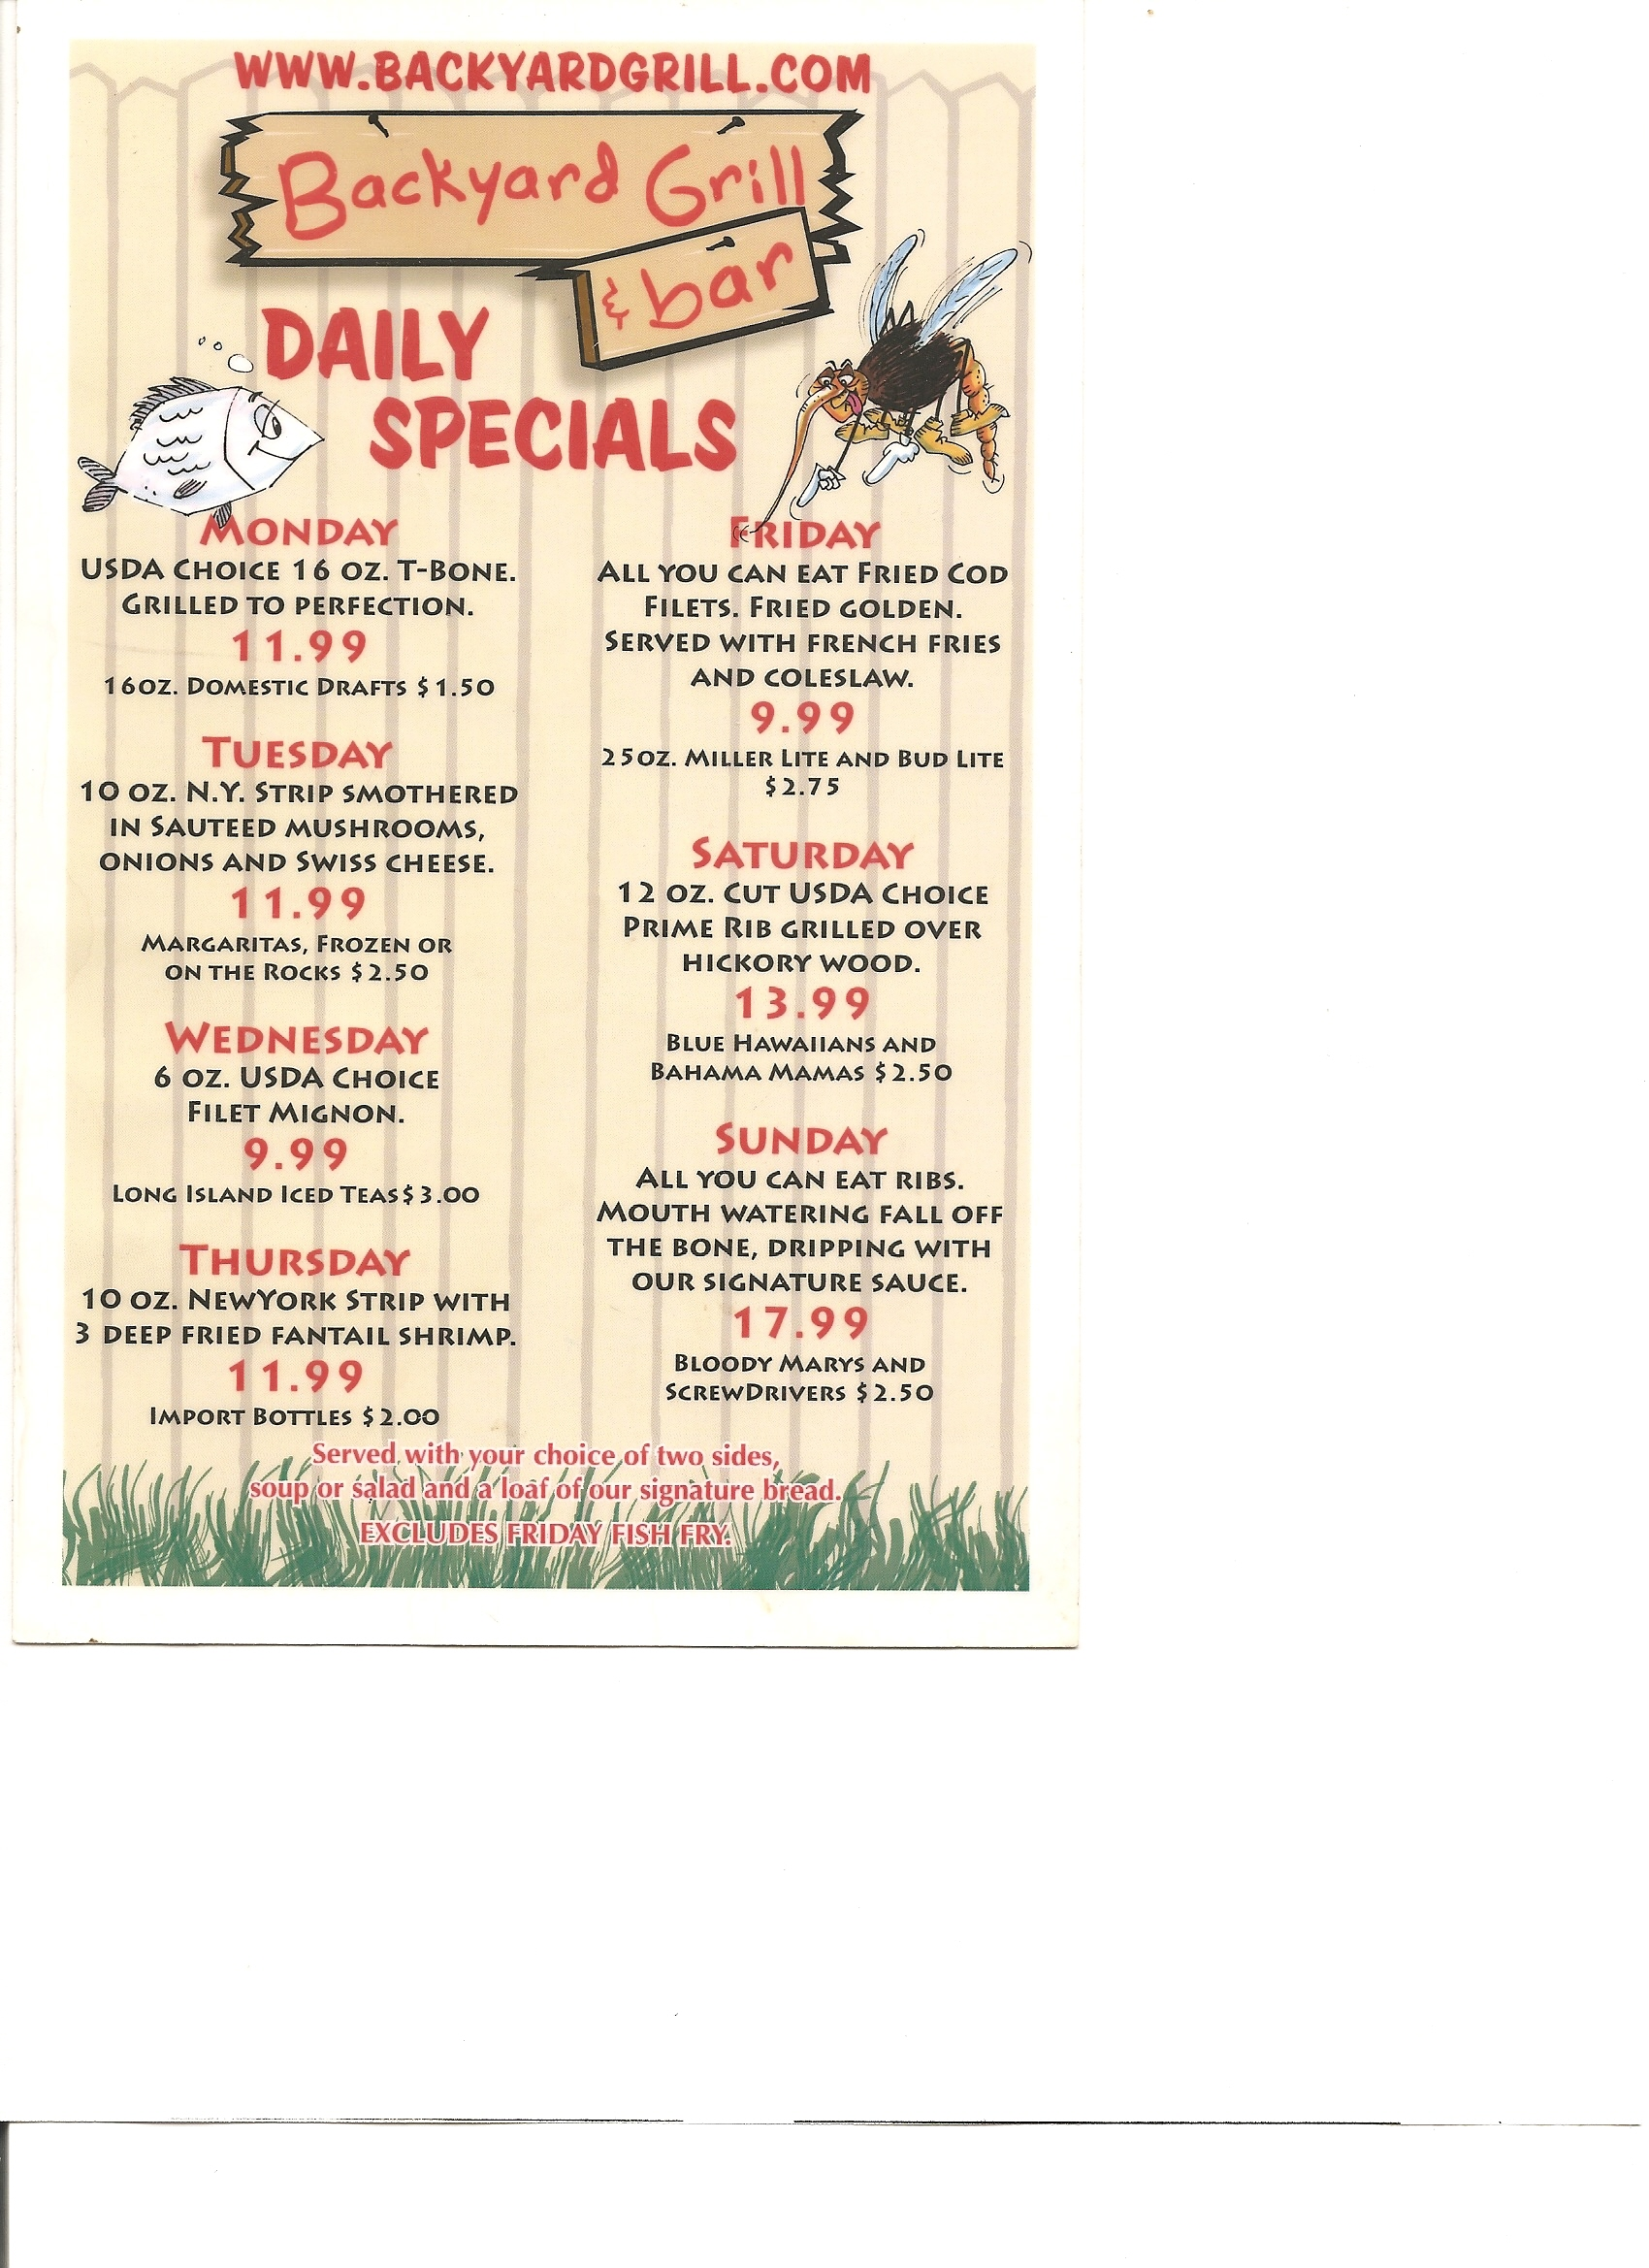 backyard grill and bar daily specials menu backyard 87125